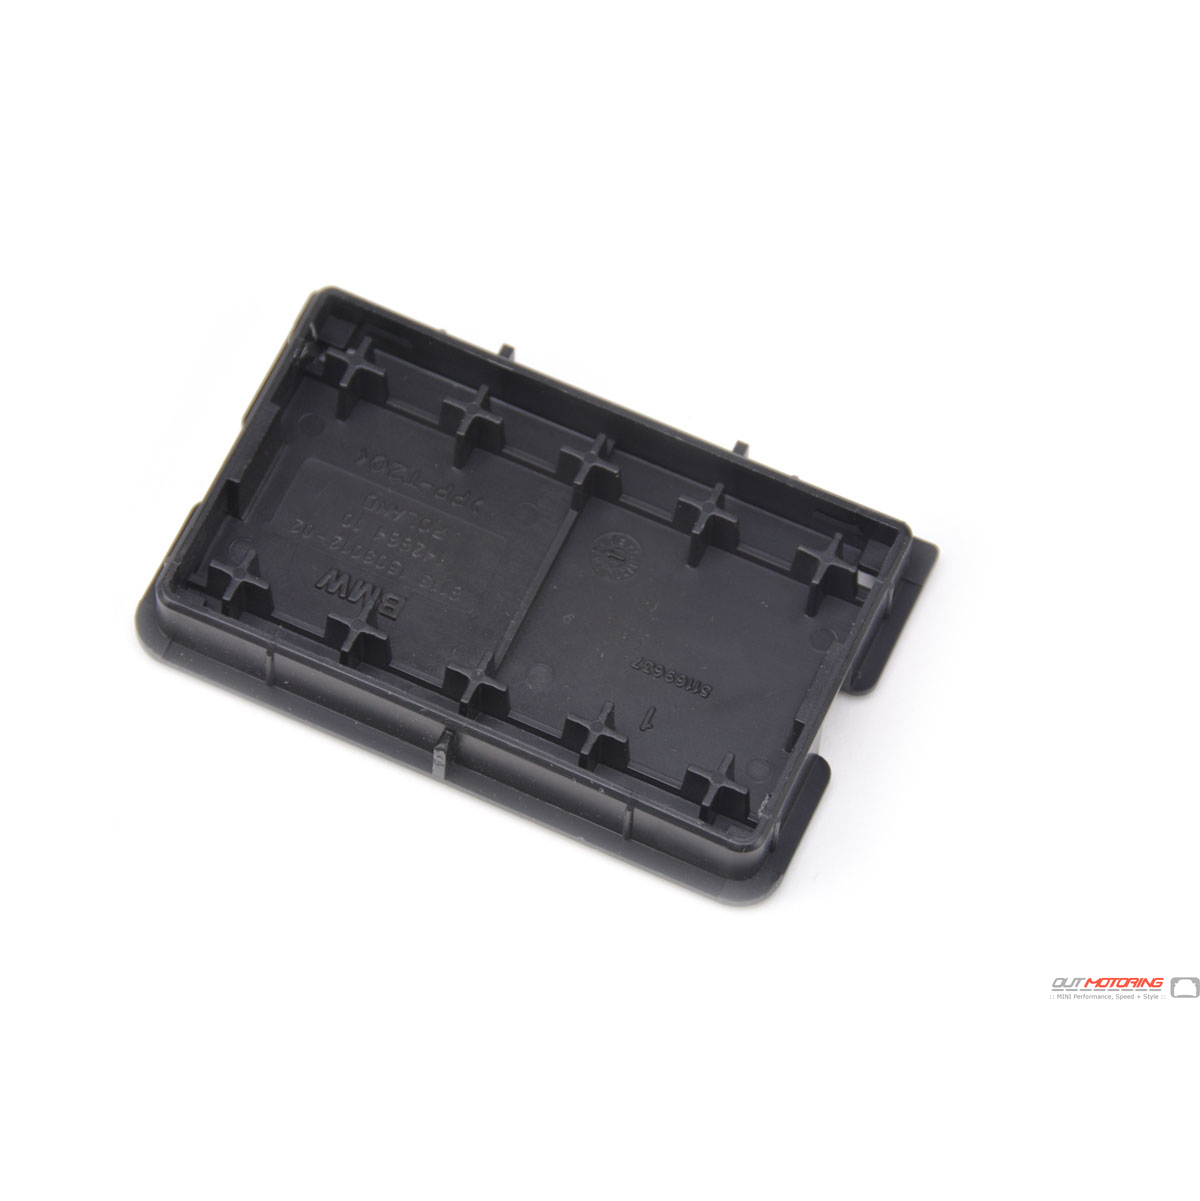 Parts For Fuse Box Wiring Diagrams Old Home 61131509012 Mini Cooper Replacement Cover Square D